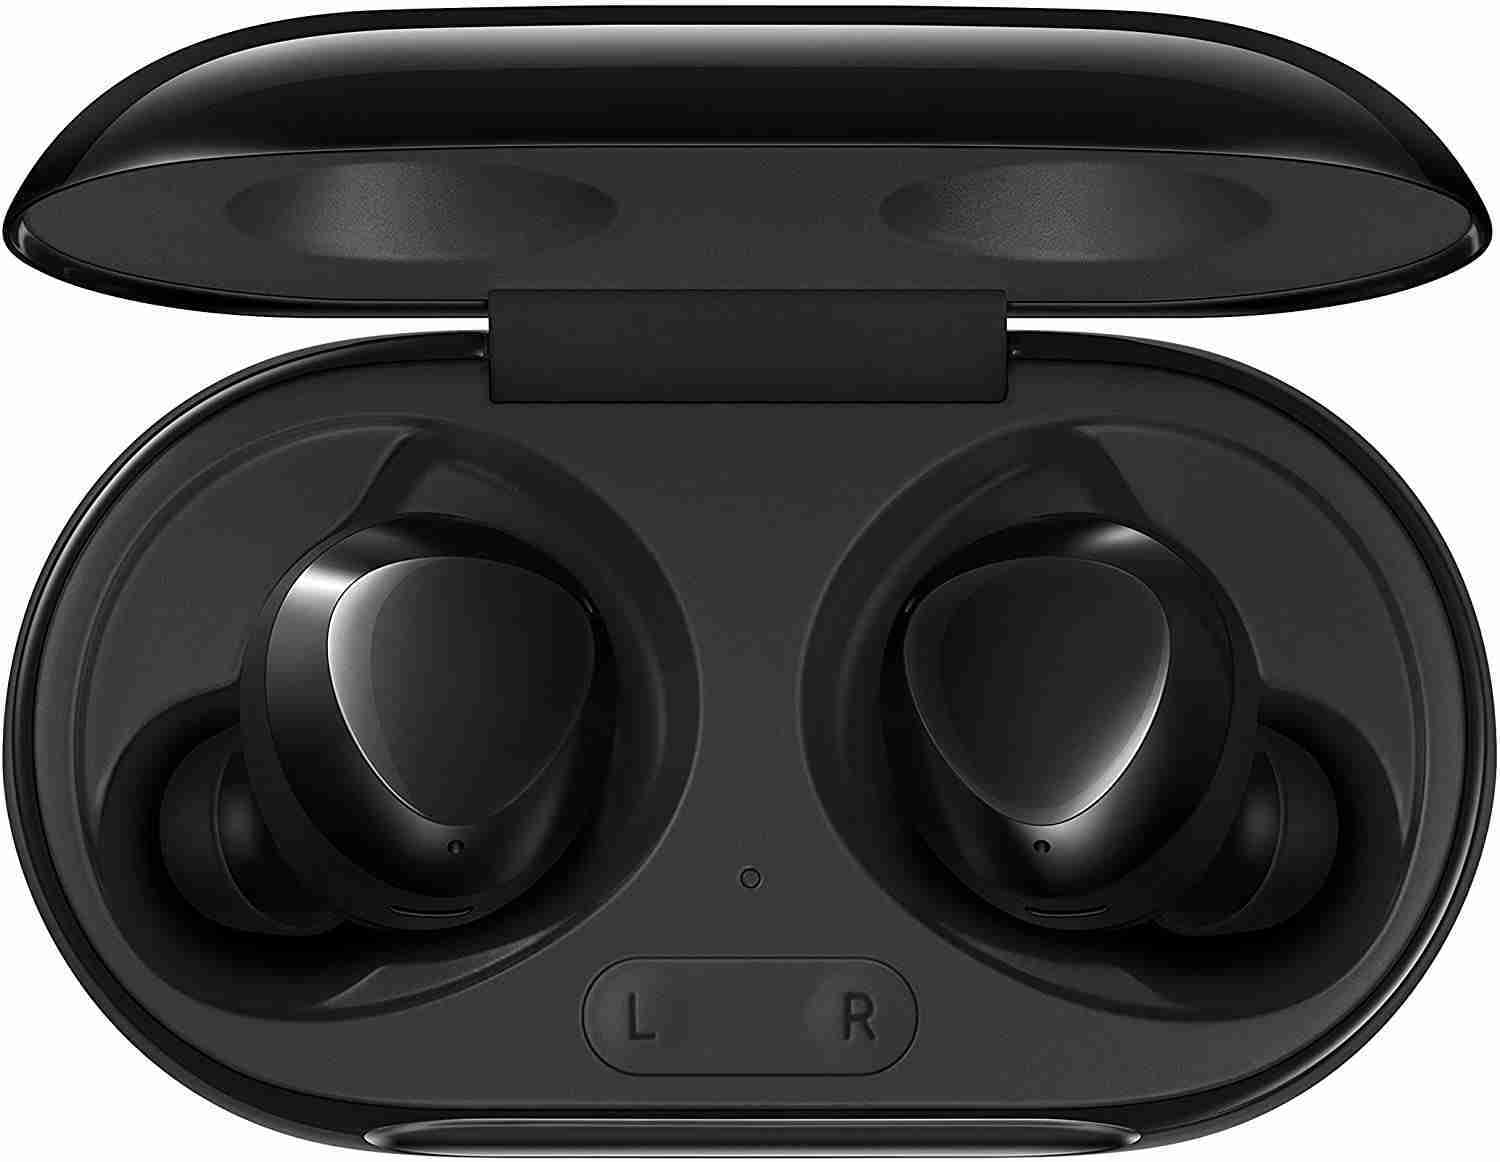 Samsung Galaxy Buds+ Auricolari Wireless